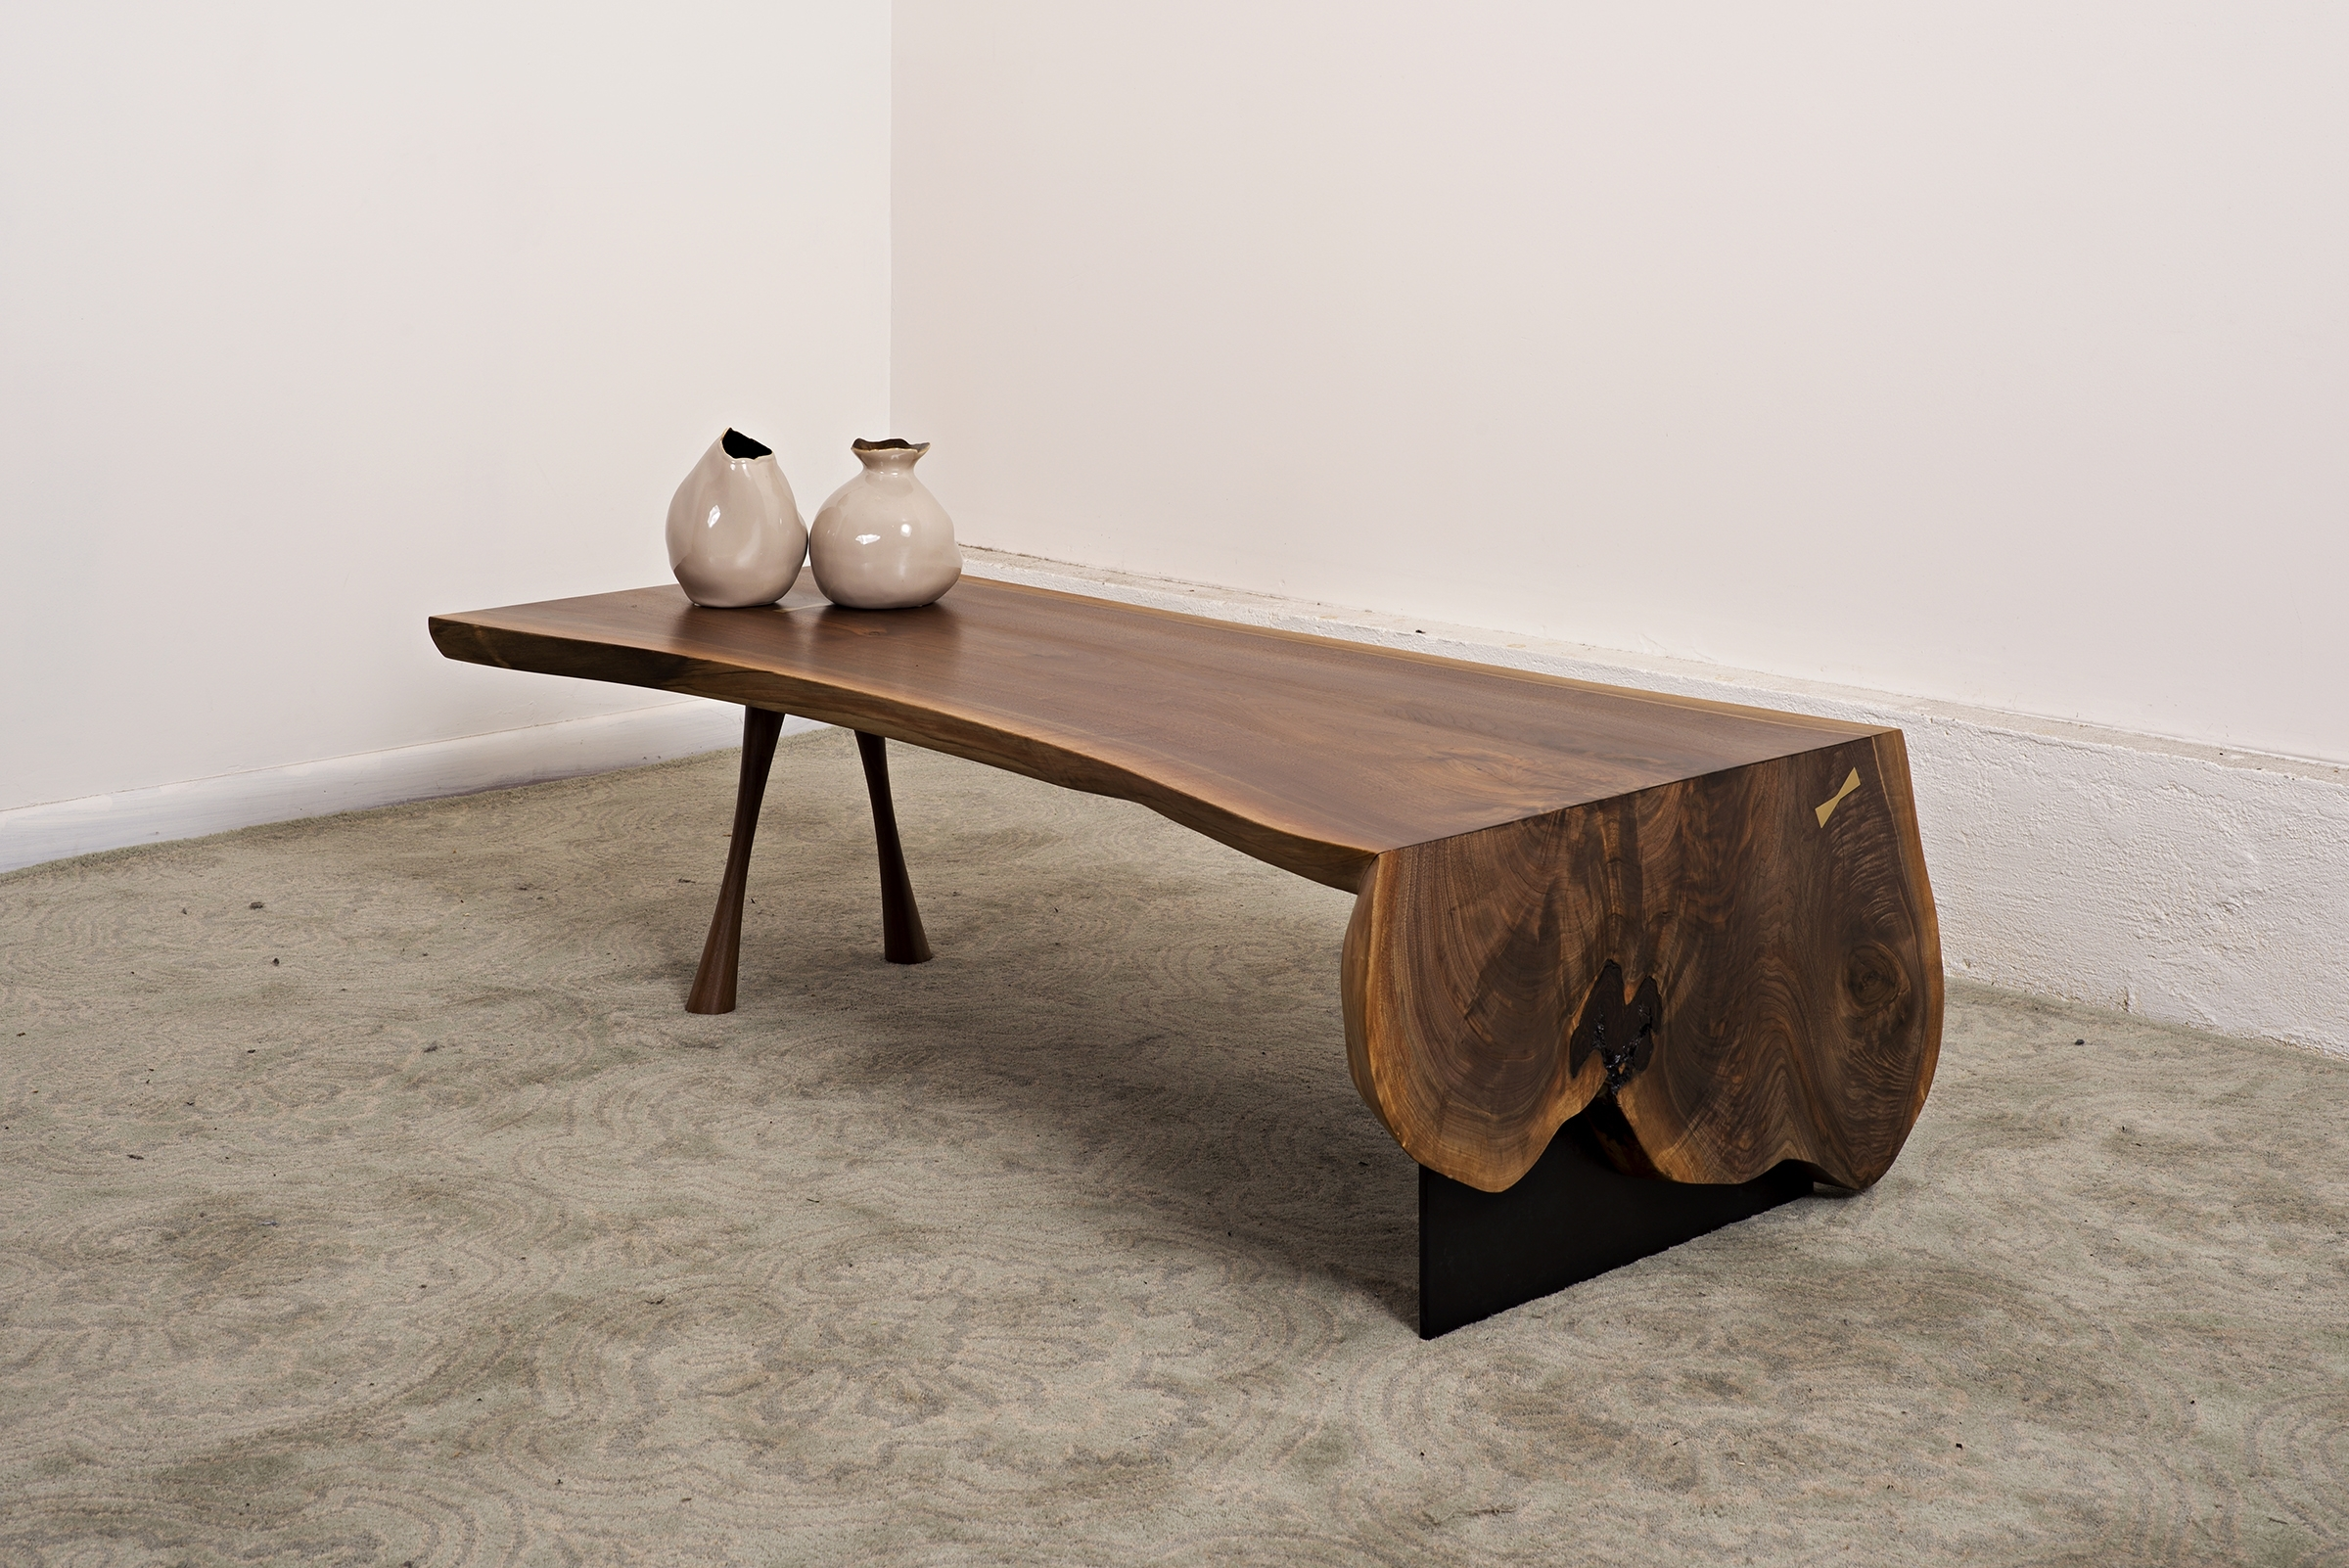 Waterfall Coffee Table with regard to Waterfall Coffee Tables (Image 24 of 30)